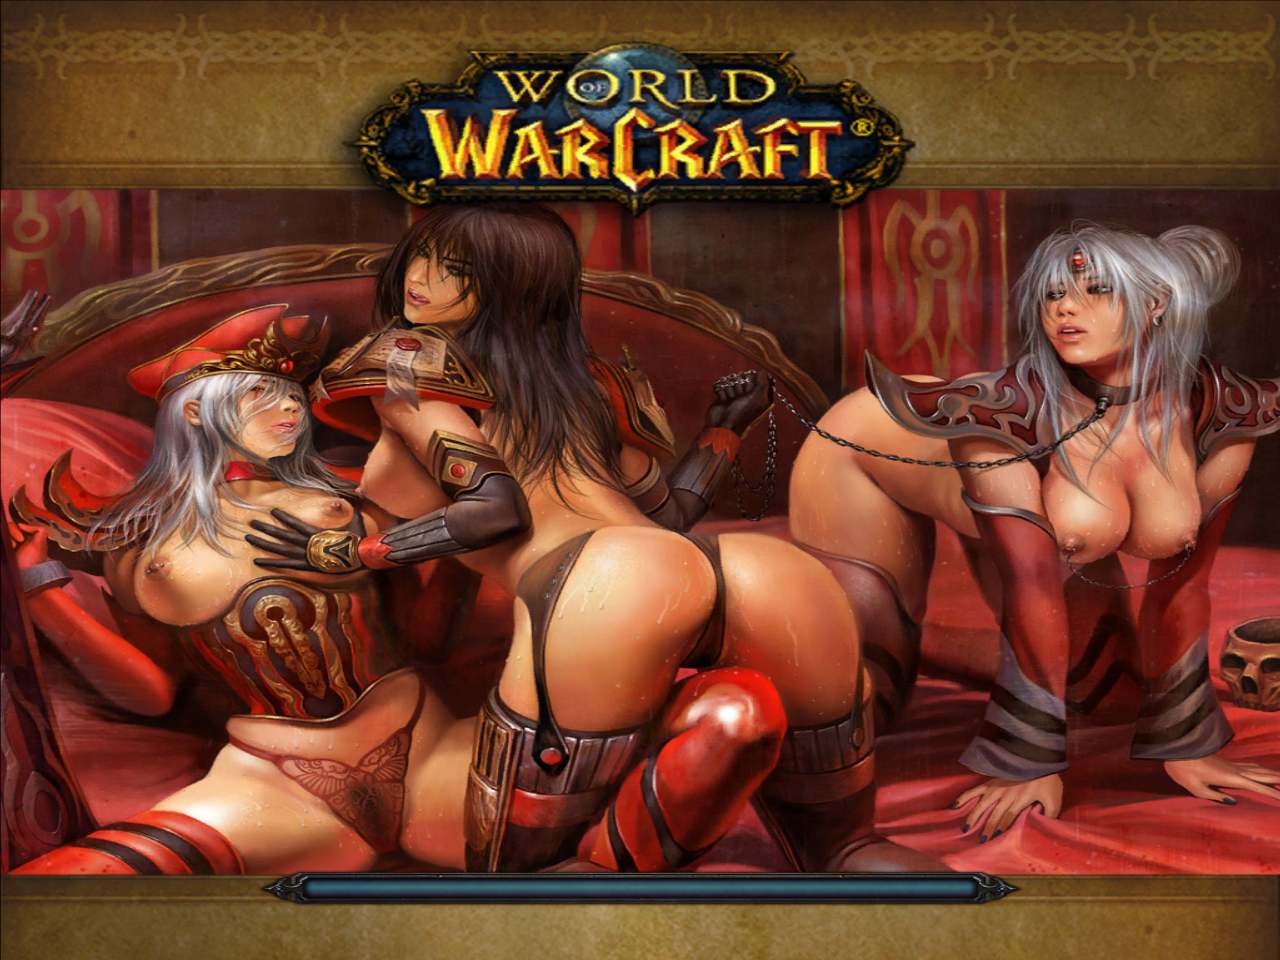 World of warcraft nude sex wallpapers sex scenes